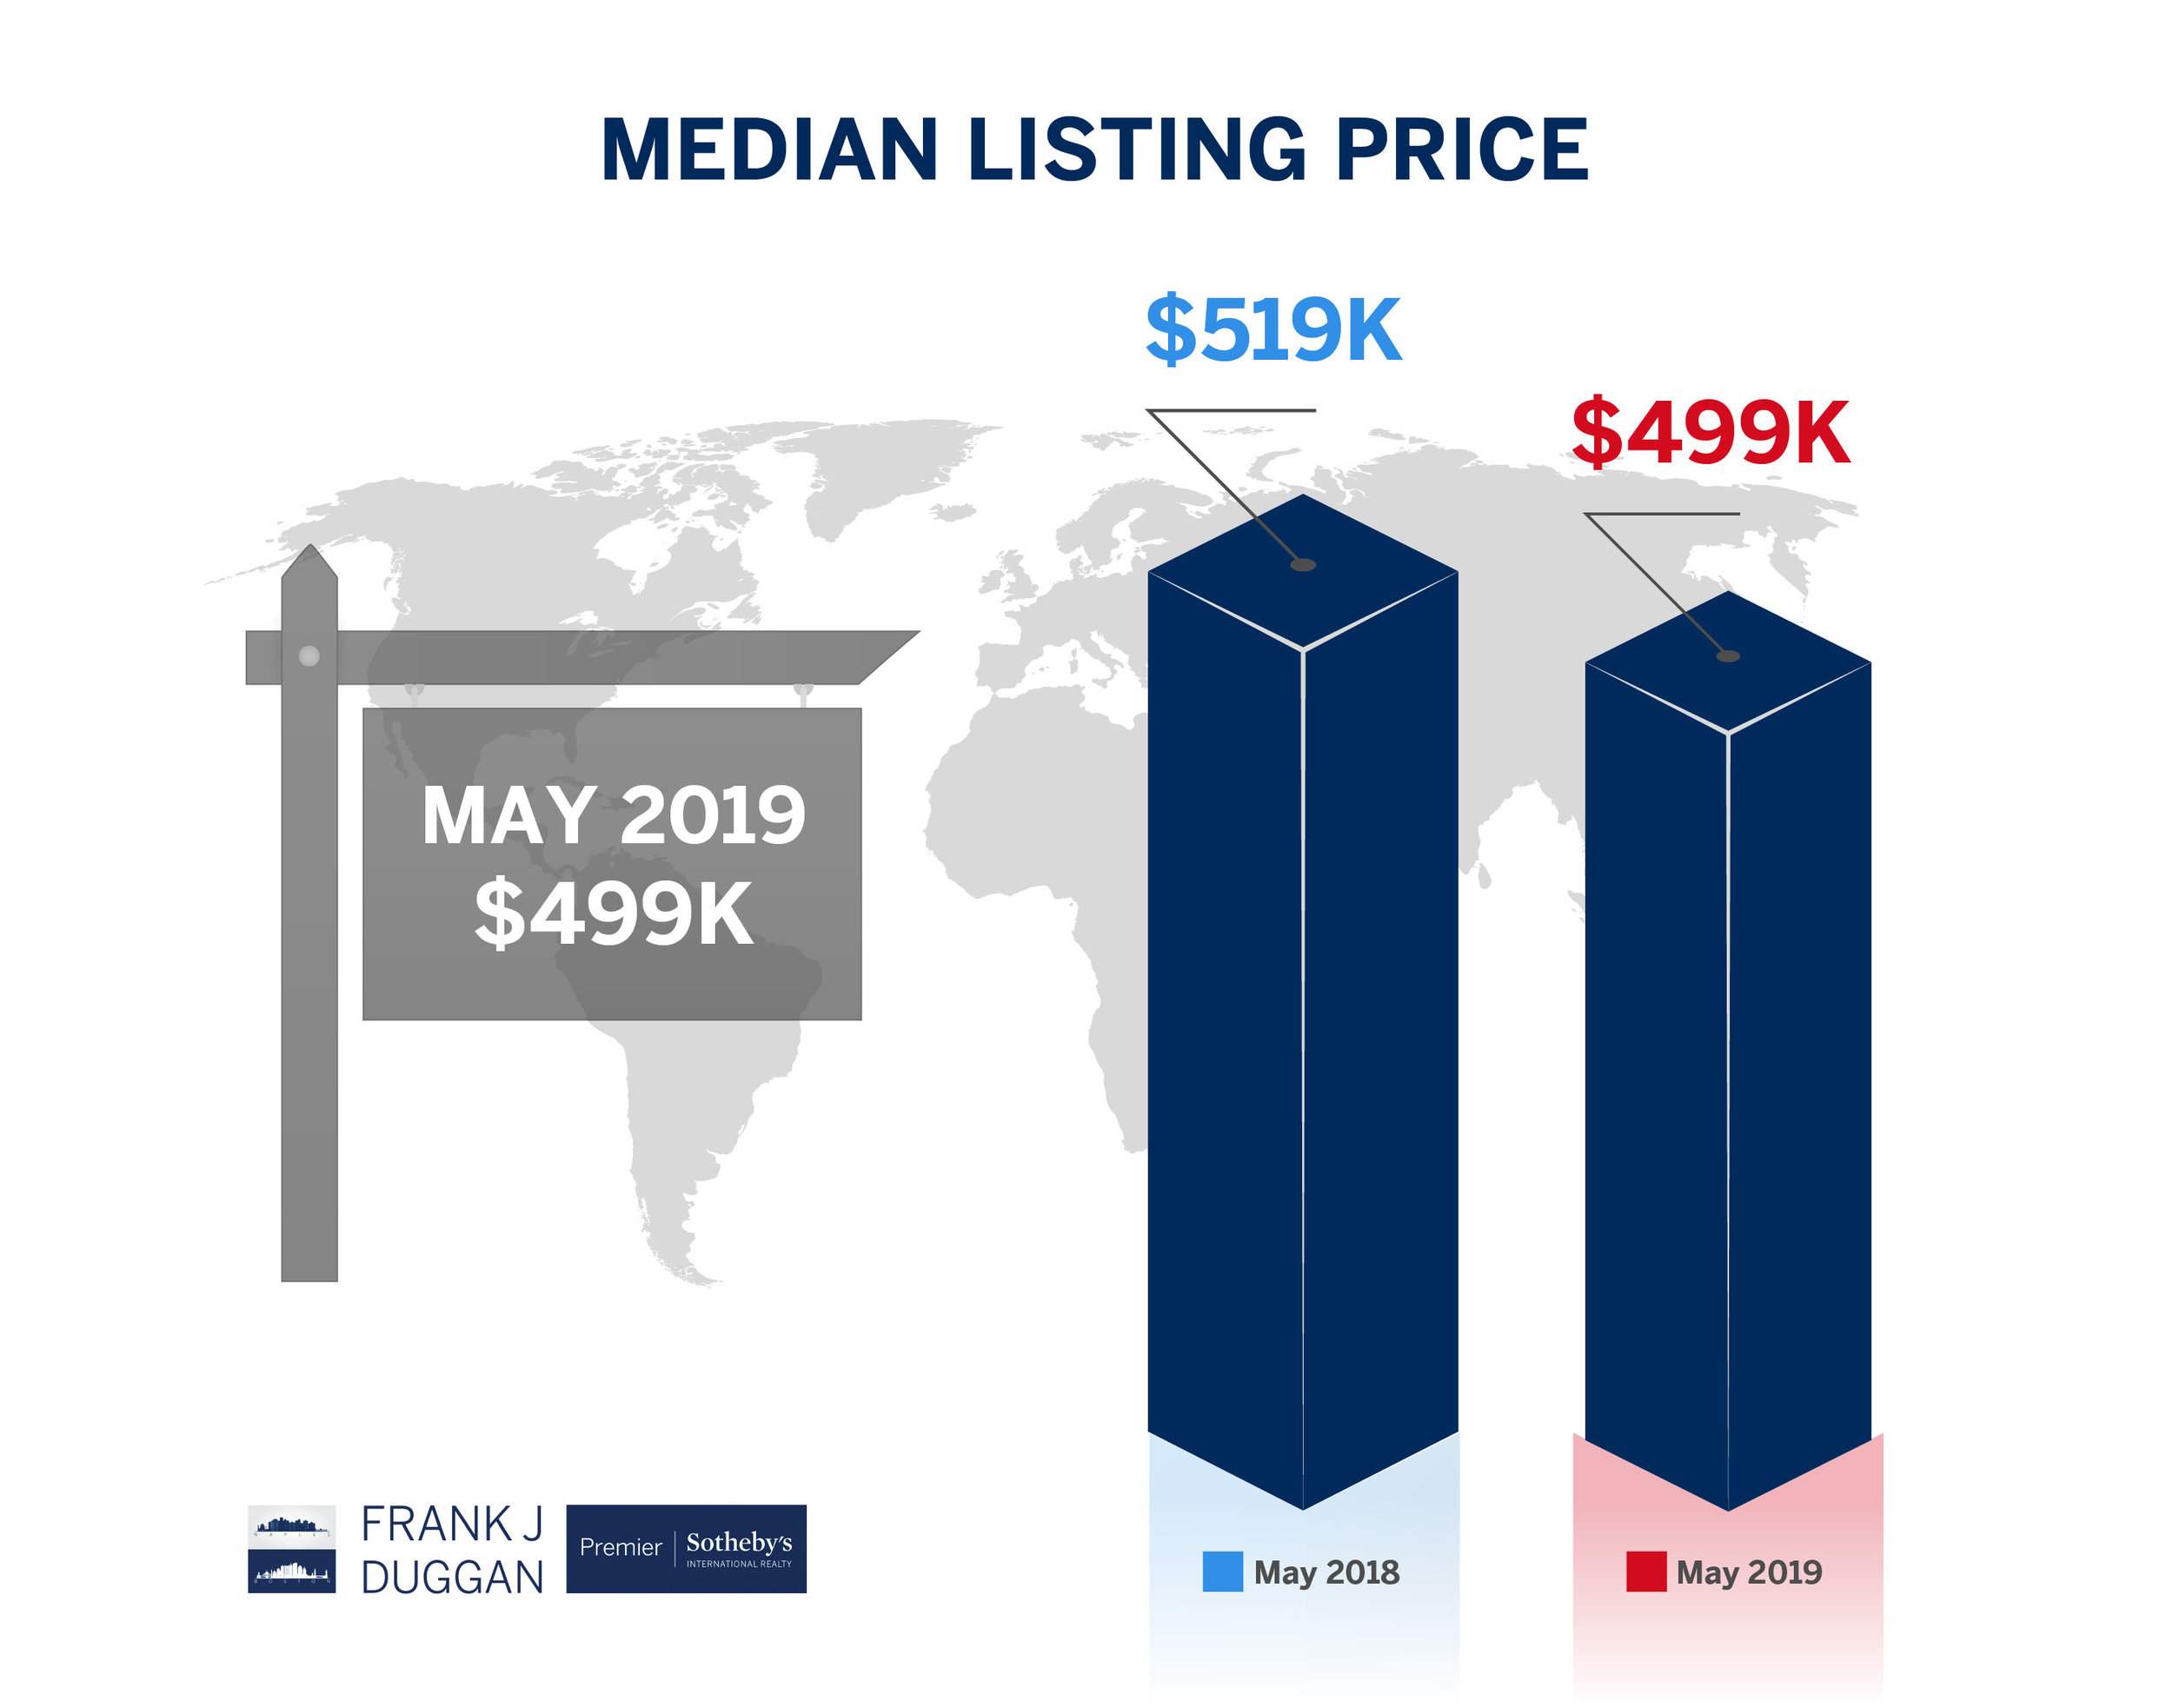 median listing price NorthNaples may 2019-01.jpg